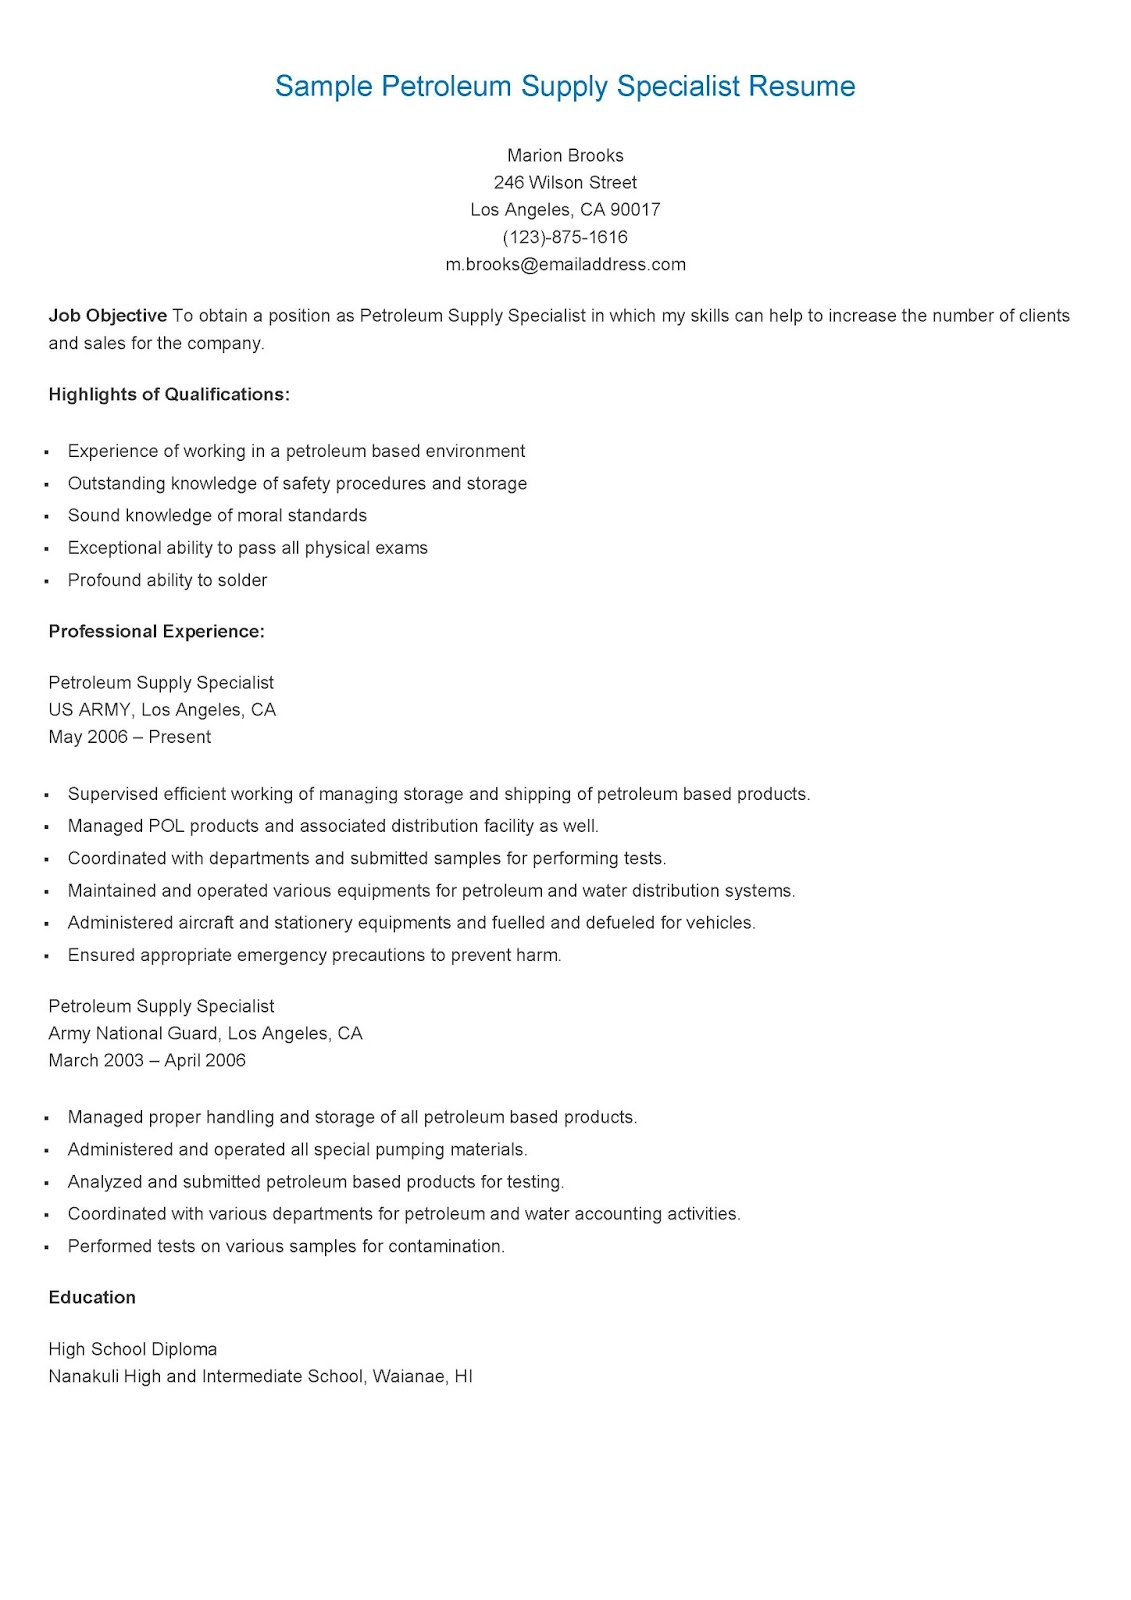 volunteer experience on resume samples